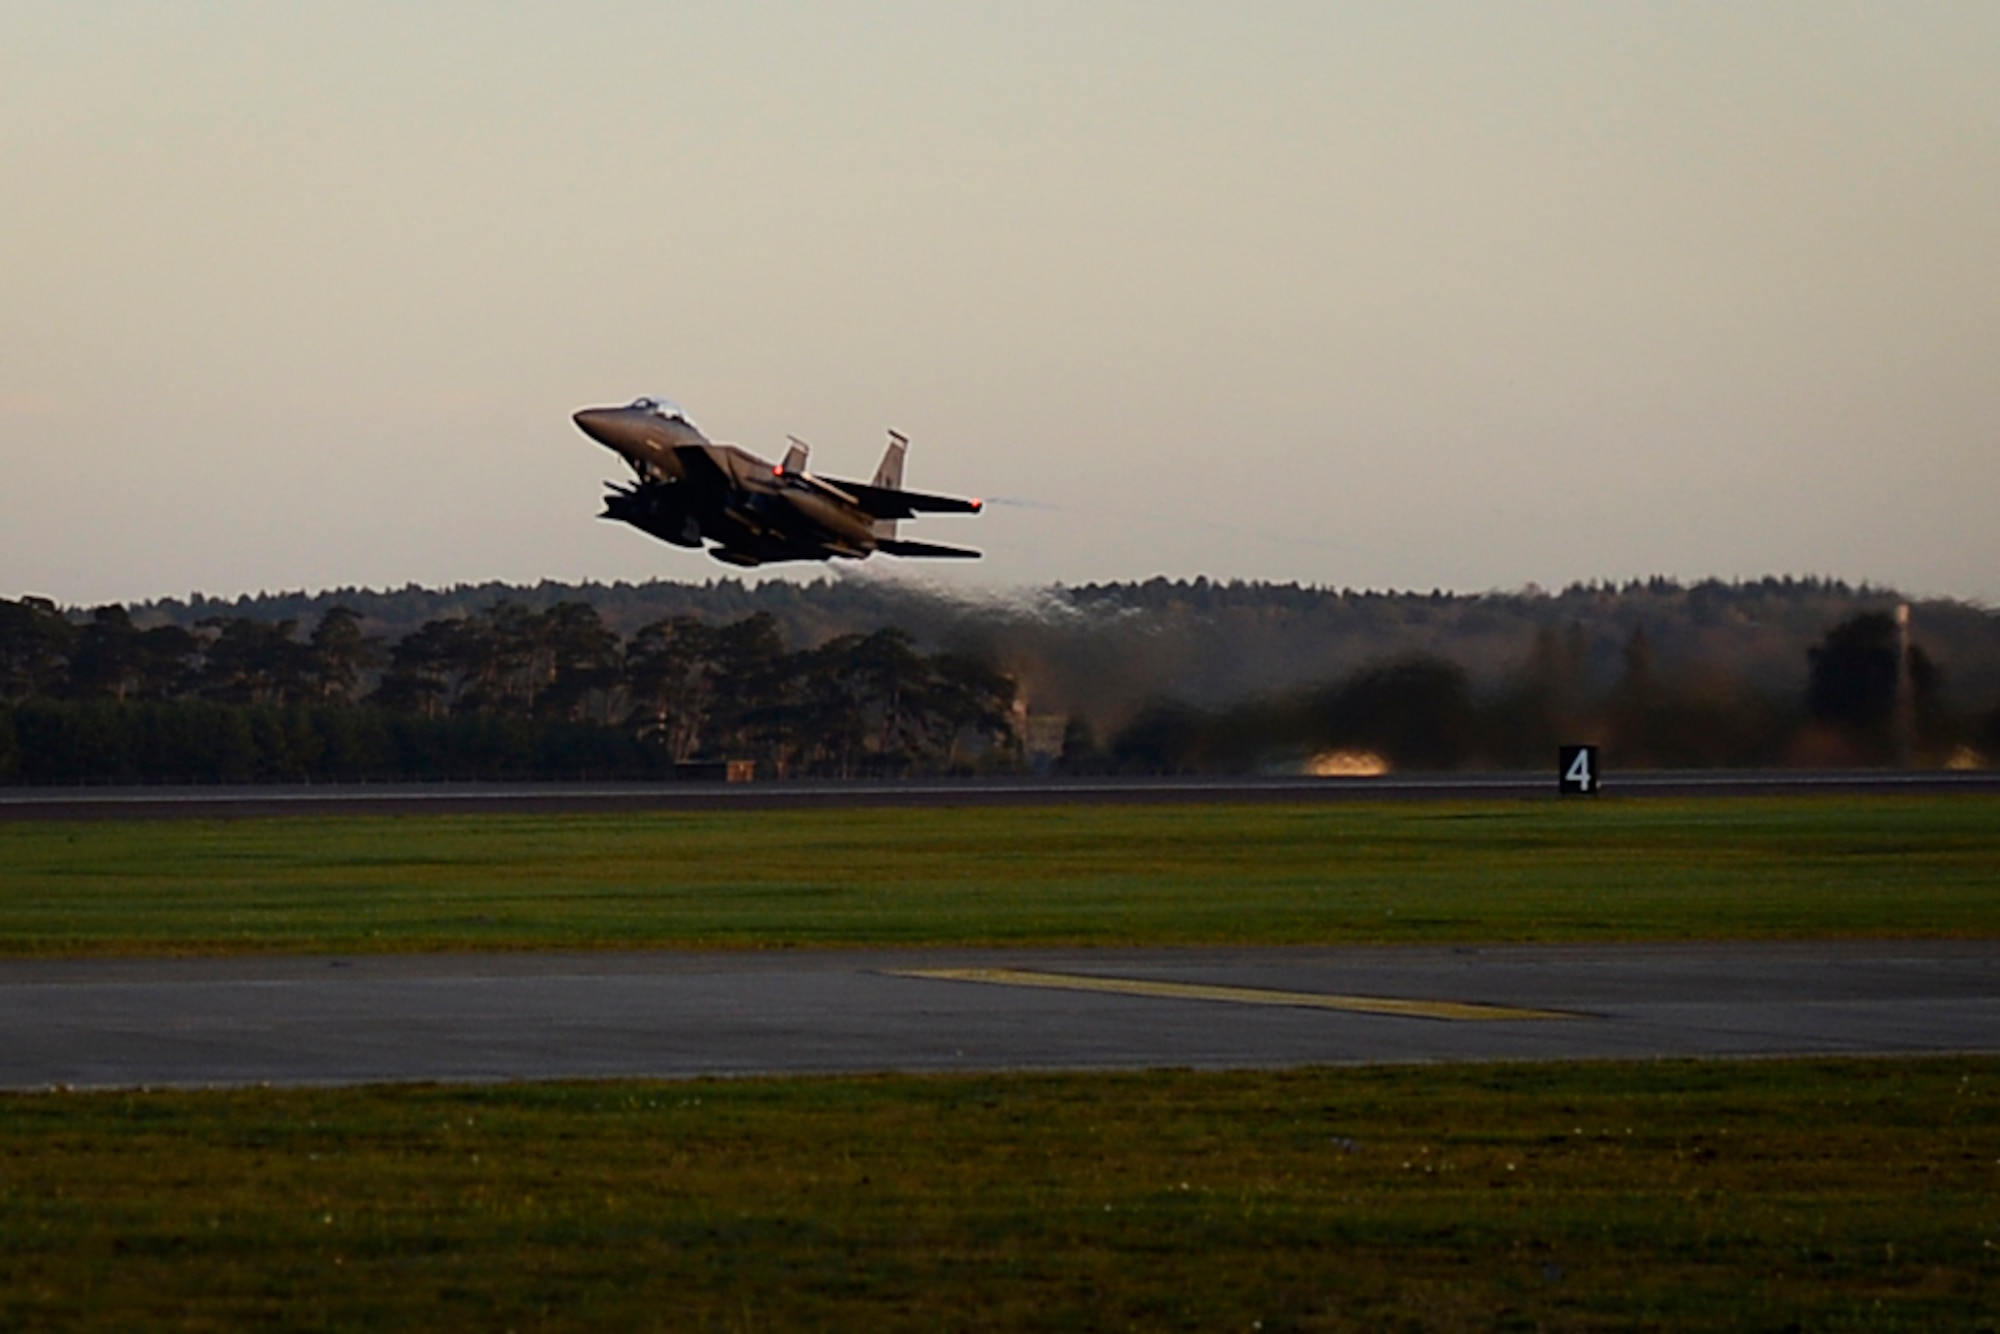 An F-15E Strike Eagle departs Royal Air Force Lakenheath, England, to support Operation Inherent Resolve Nov. 12, 2015. Aircraft from the 48th Fighter Wing deployed to Incirlik Air Base, Turkey, to conduct counter-Islamic State of Iraq and the Levant missions in Iraq and Syria. The dual-role fighter jet is designed to perform air-to-air and air-to-ground missions in all weather conditions. (U.S. Air Force photo/Airman 1st Class Erin R. Babis)